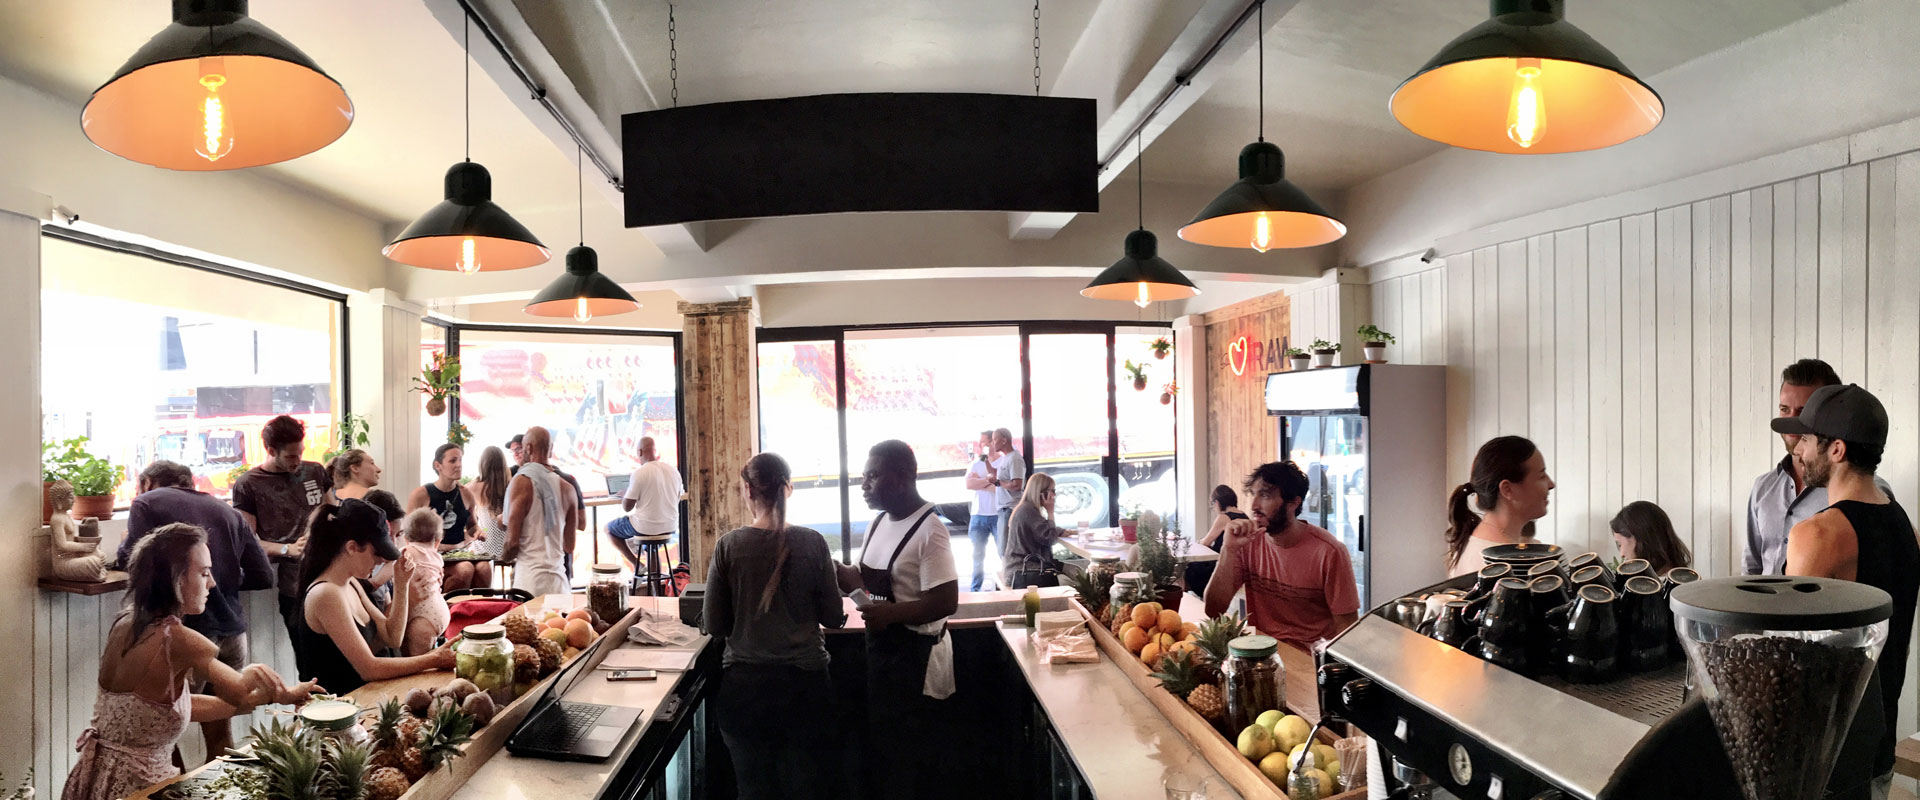 Review - Scheckter's Raw, Sea Point - Cape Town Vegan